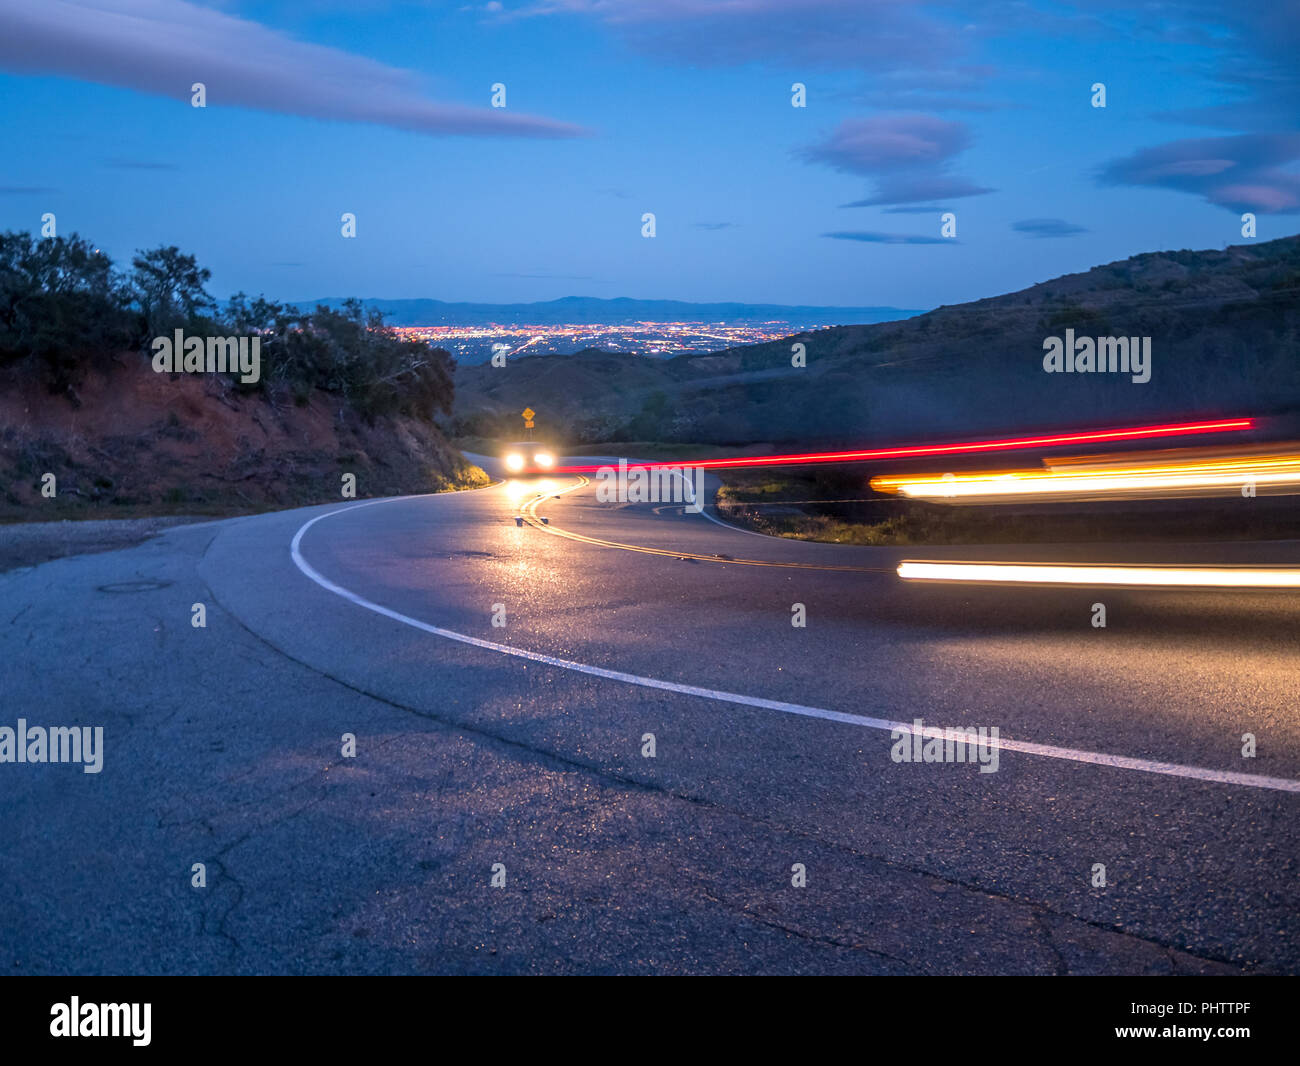 Cars Tail Lights Trails On a Downhill Road With Silicon Valley in the Background - Stock Image